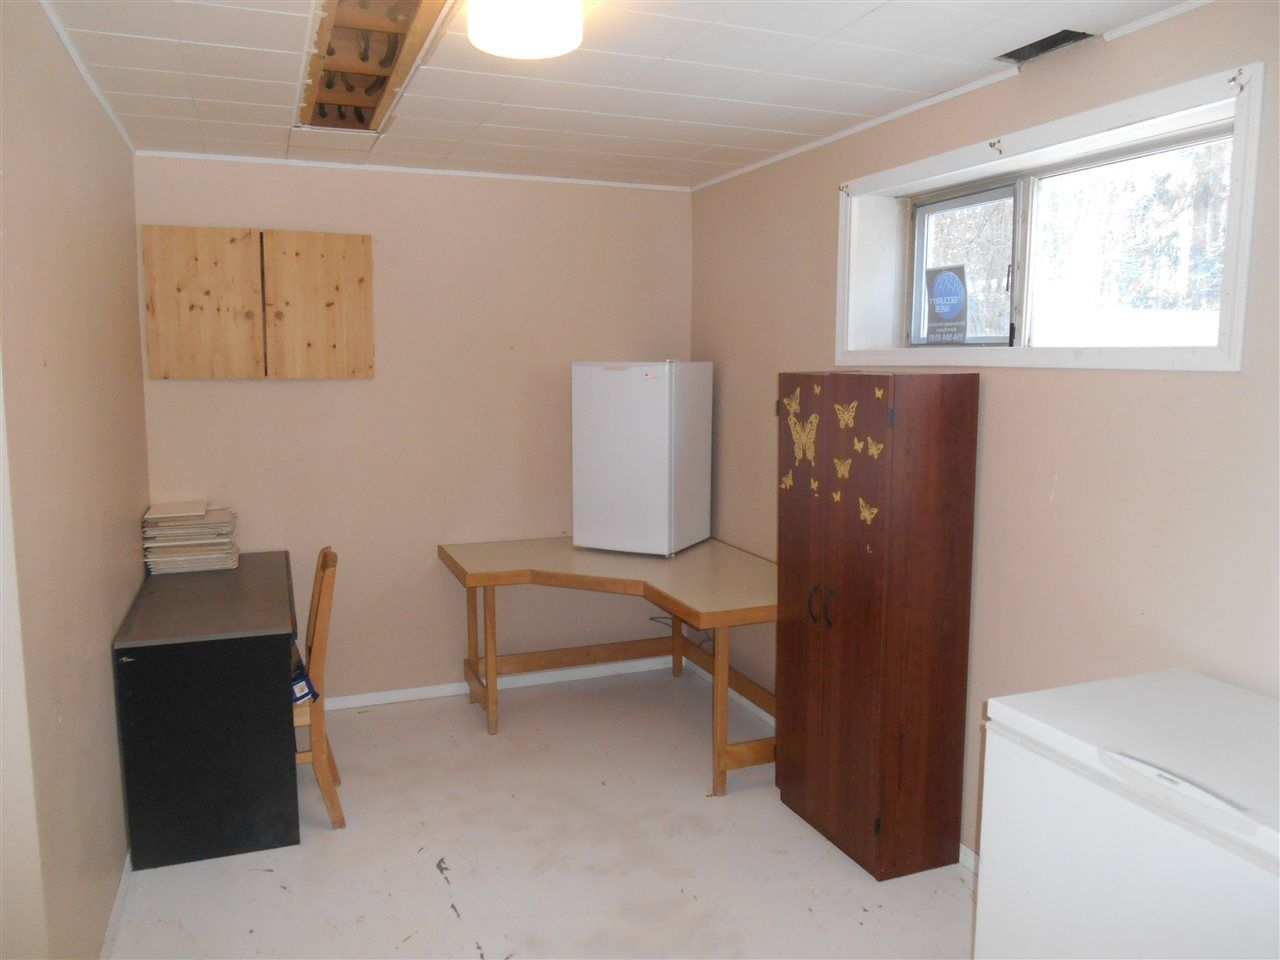 Photo 15: Photos: 1955 GARDEN Drive in Prince George: Seymour House for sale (PG City Central (Zone 72))  : MLS®# R2120742